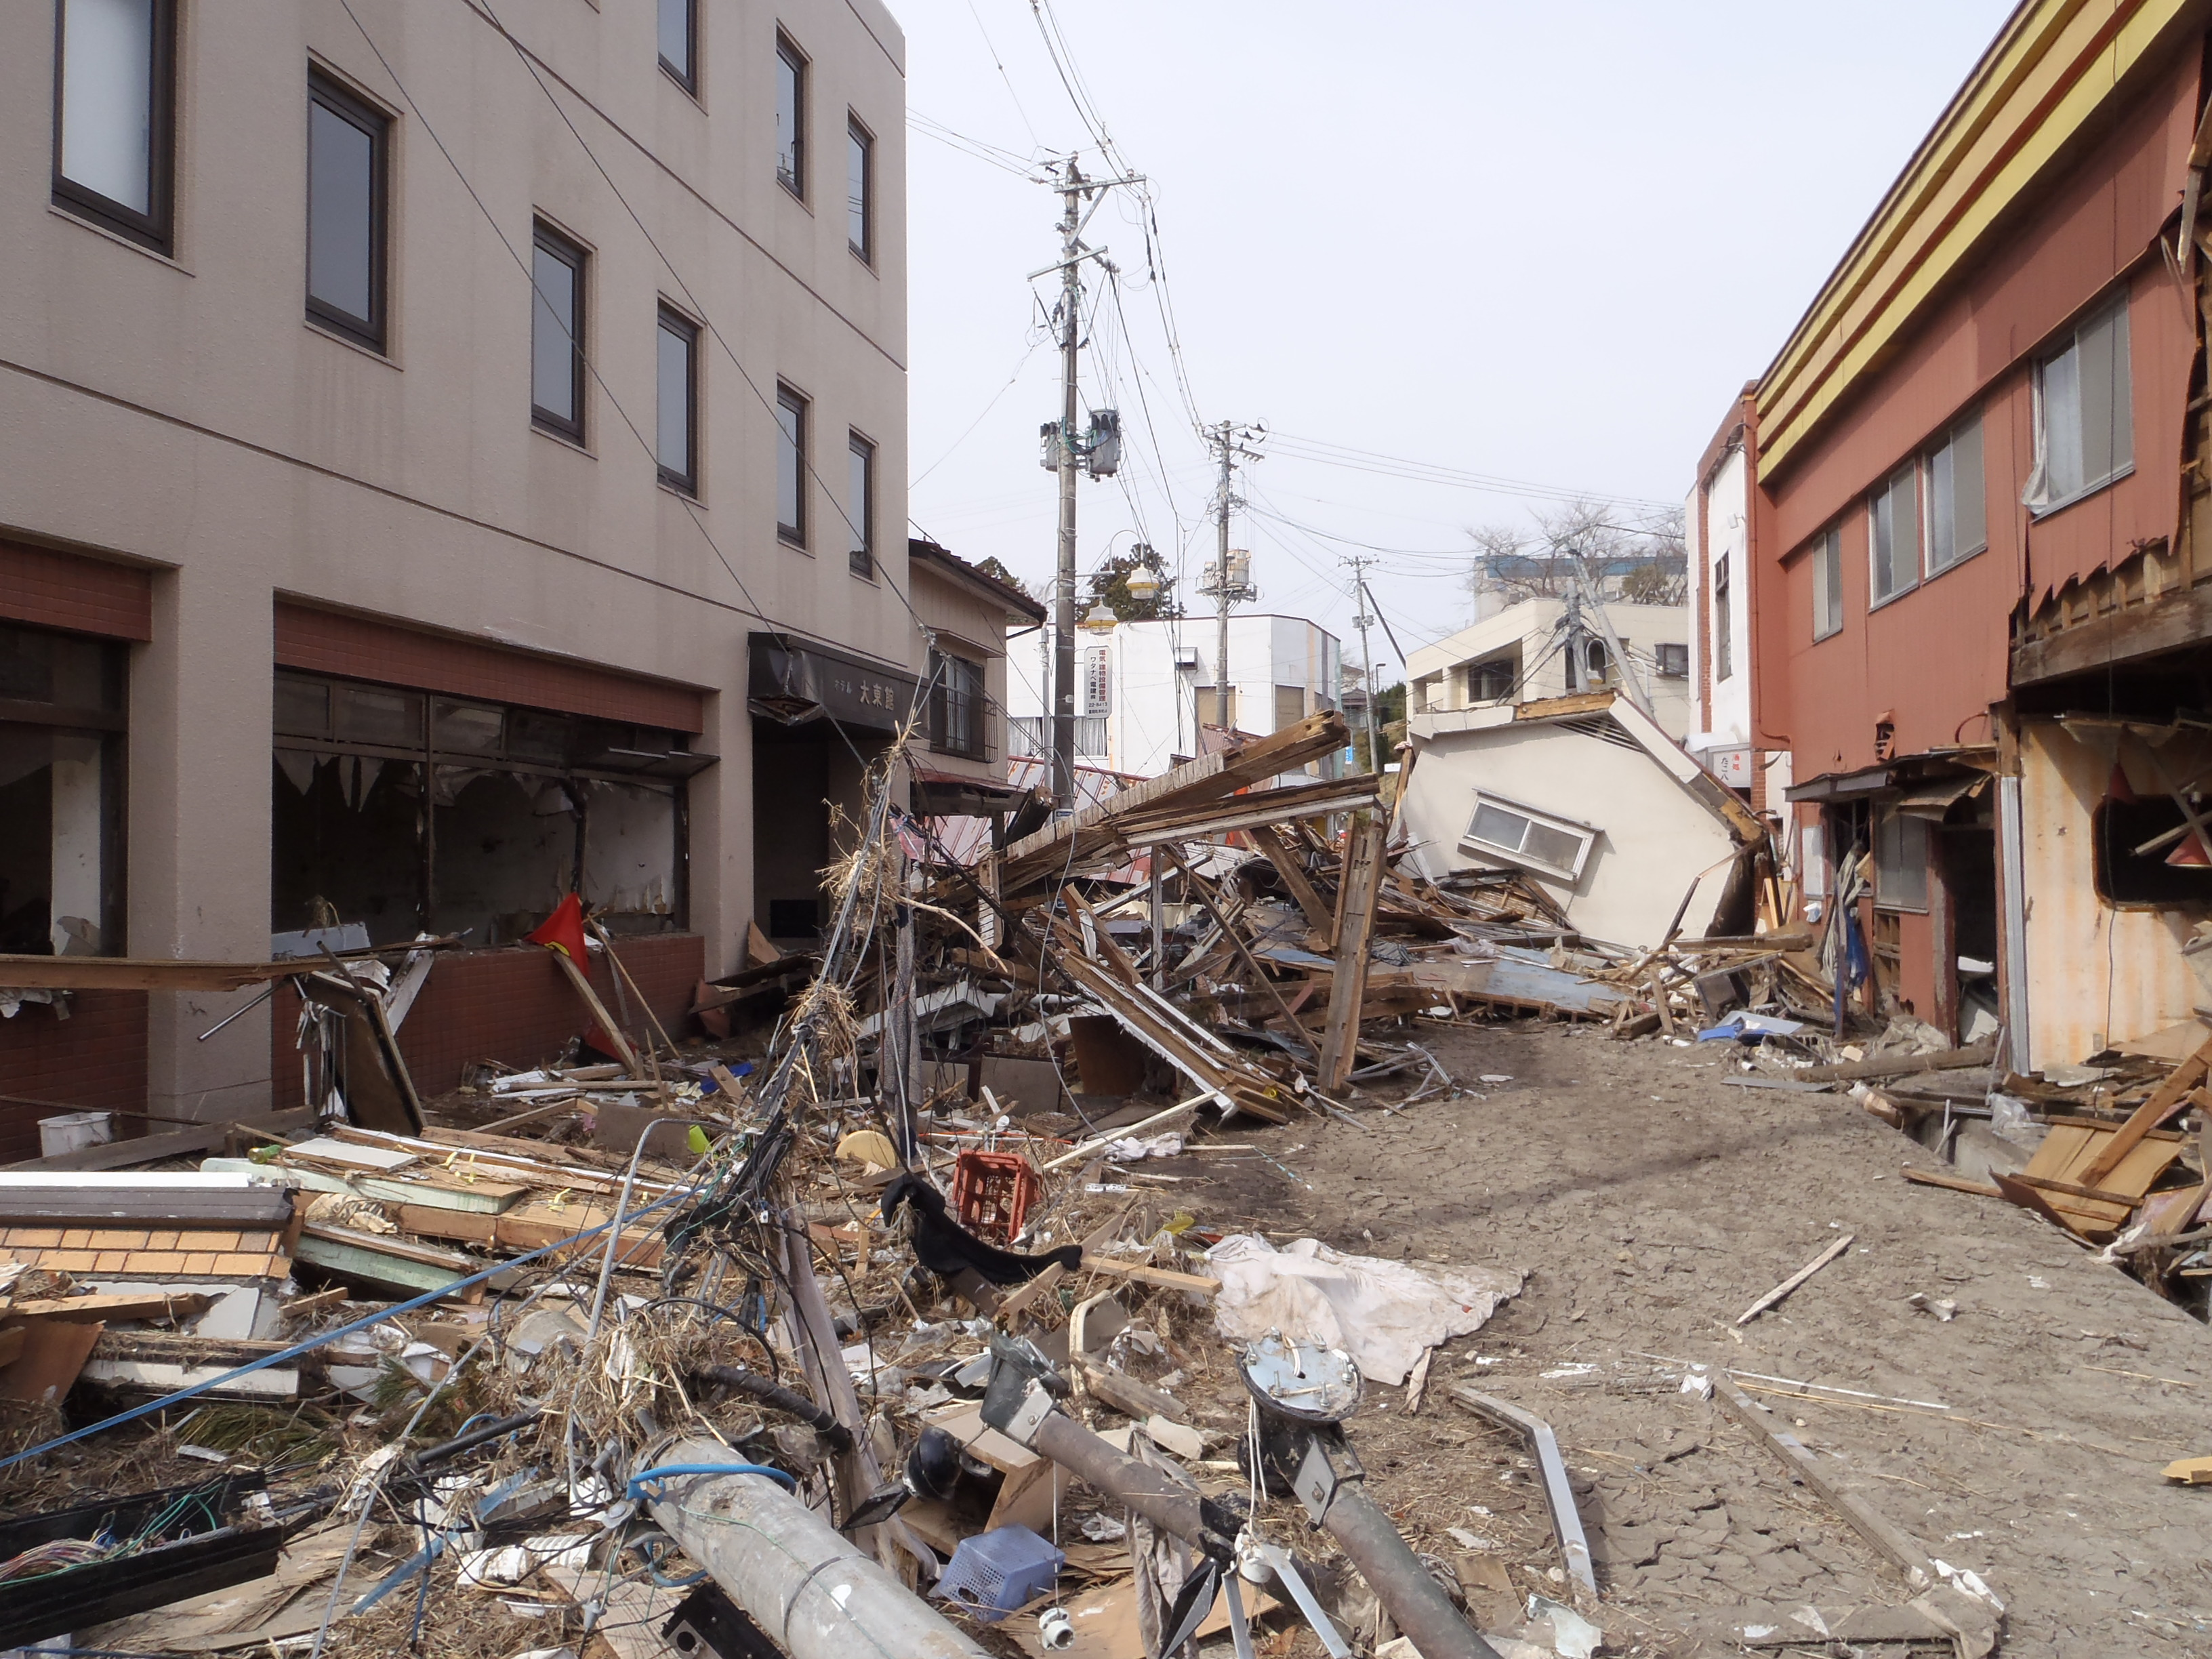 September 2012 – Japan Subculture Research Center